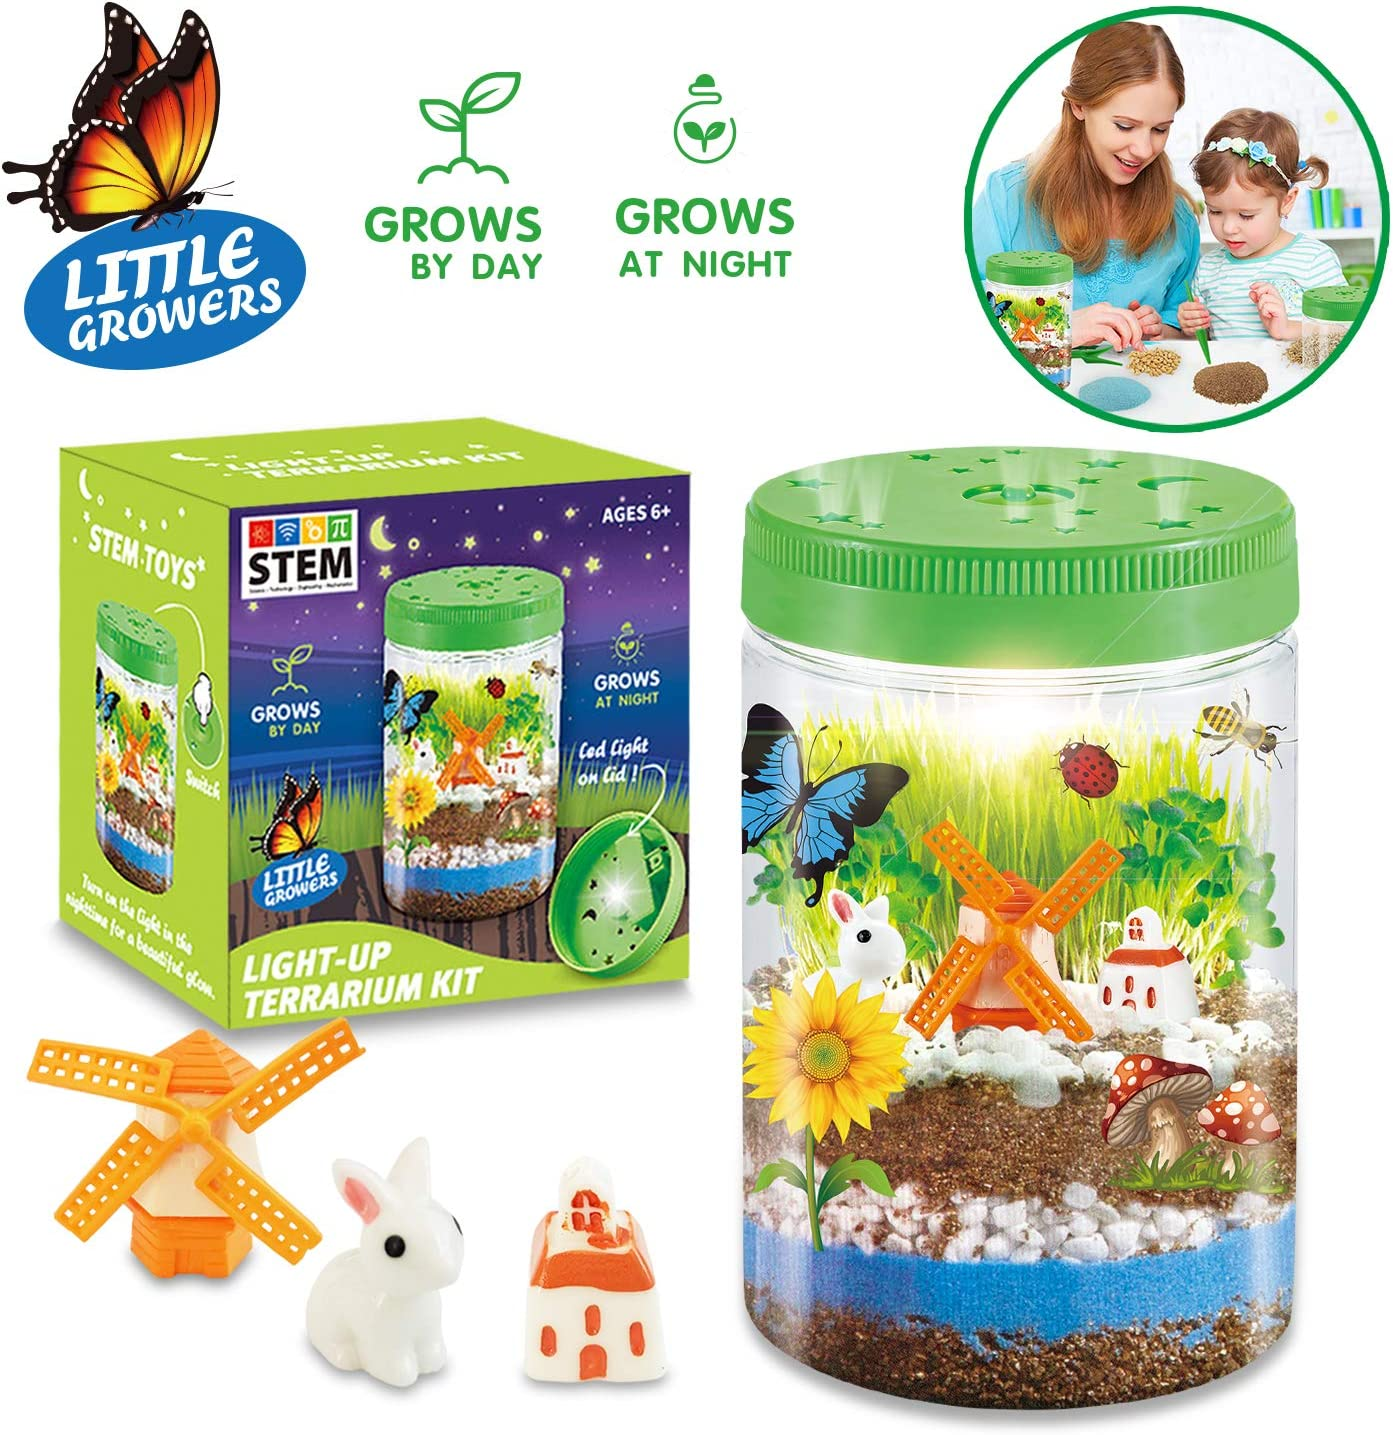 HOMOFY Light-up Terrarium Kit for Kids with LED Light - Create Mini Garden That Glows at Night, STEM Educational Science Kits for Kids 5 6 7 8 9 Years Old Boys & Girls - Gardening Gifts for Kids